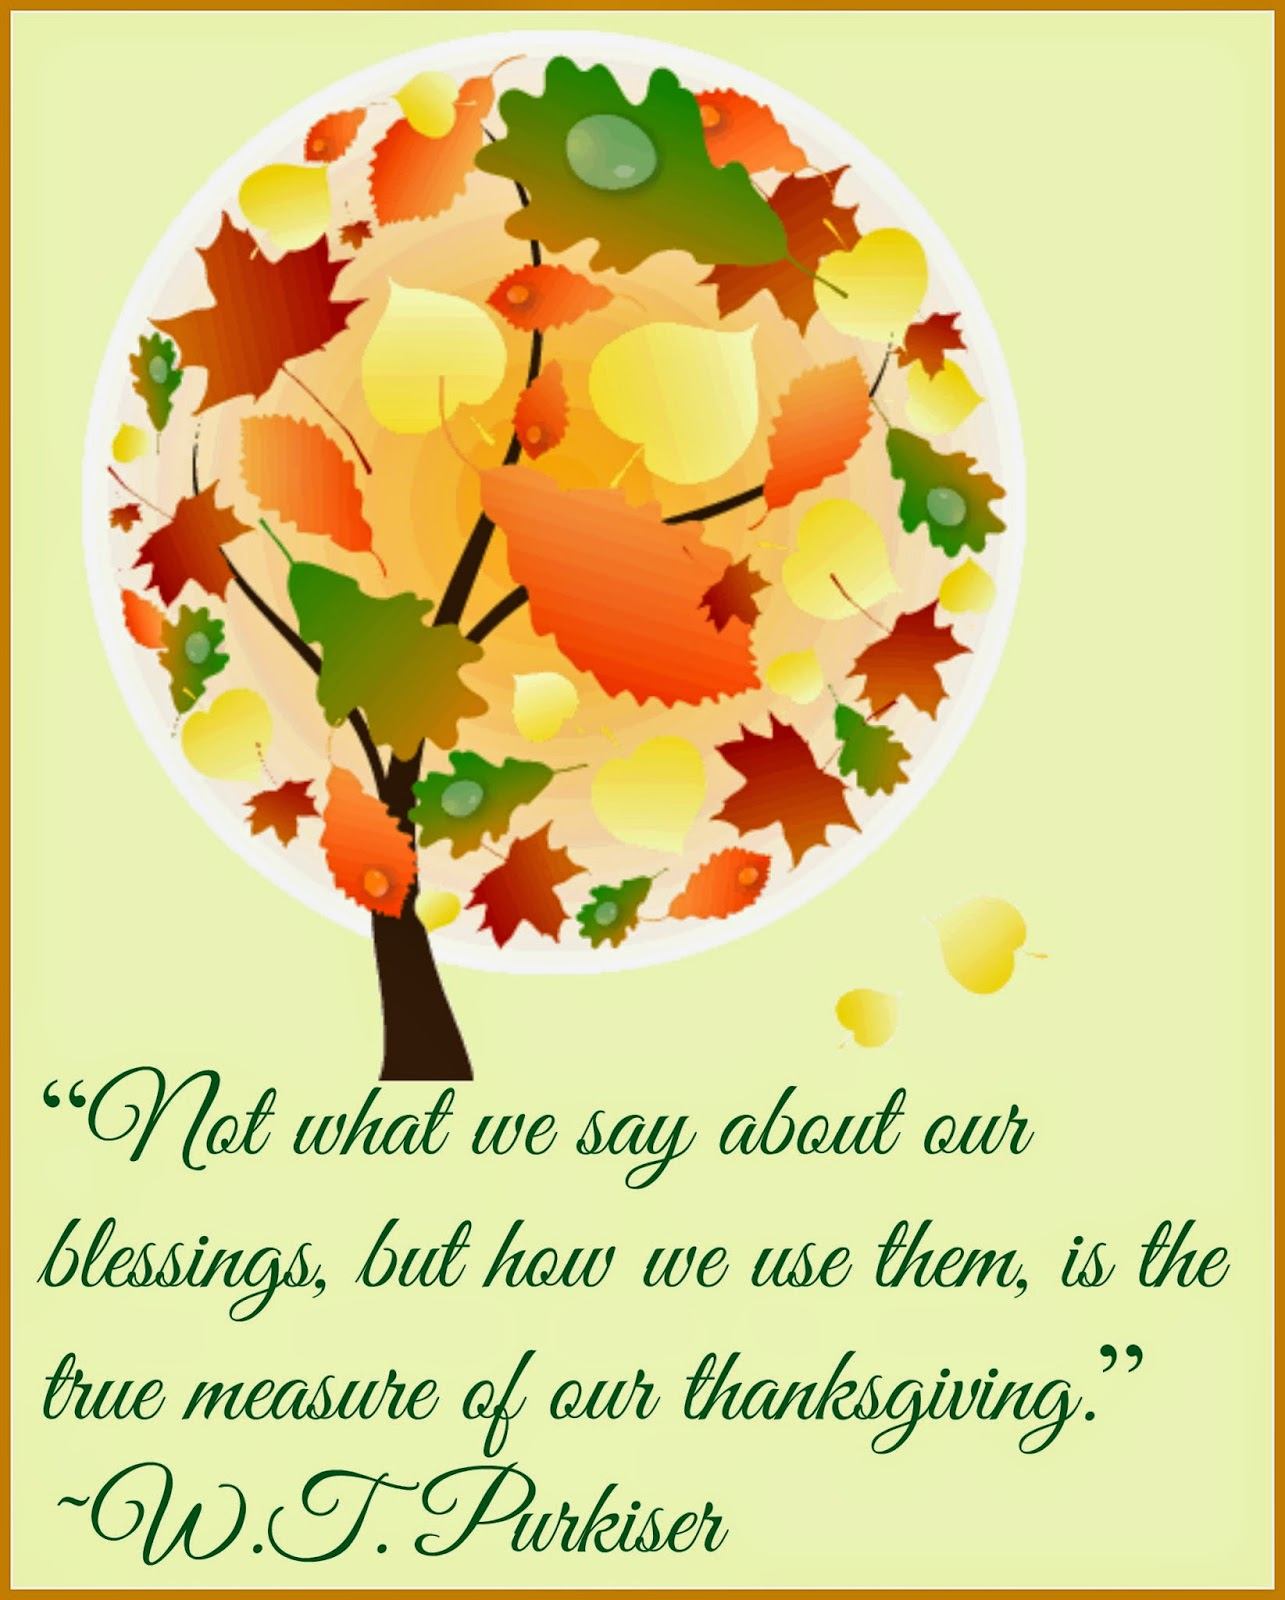 Give Thanks - Give Love - Thanksgiving